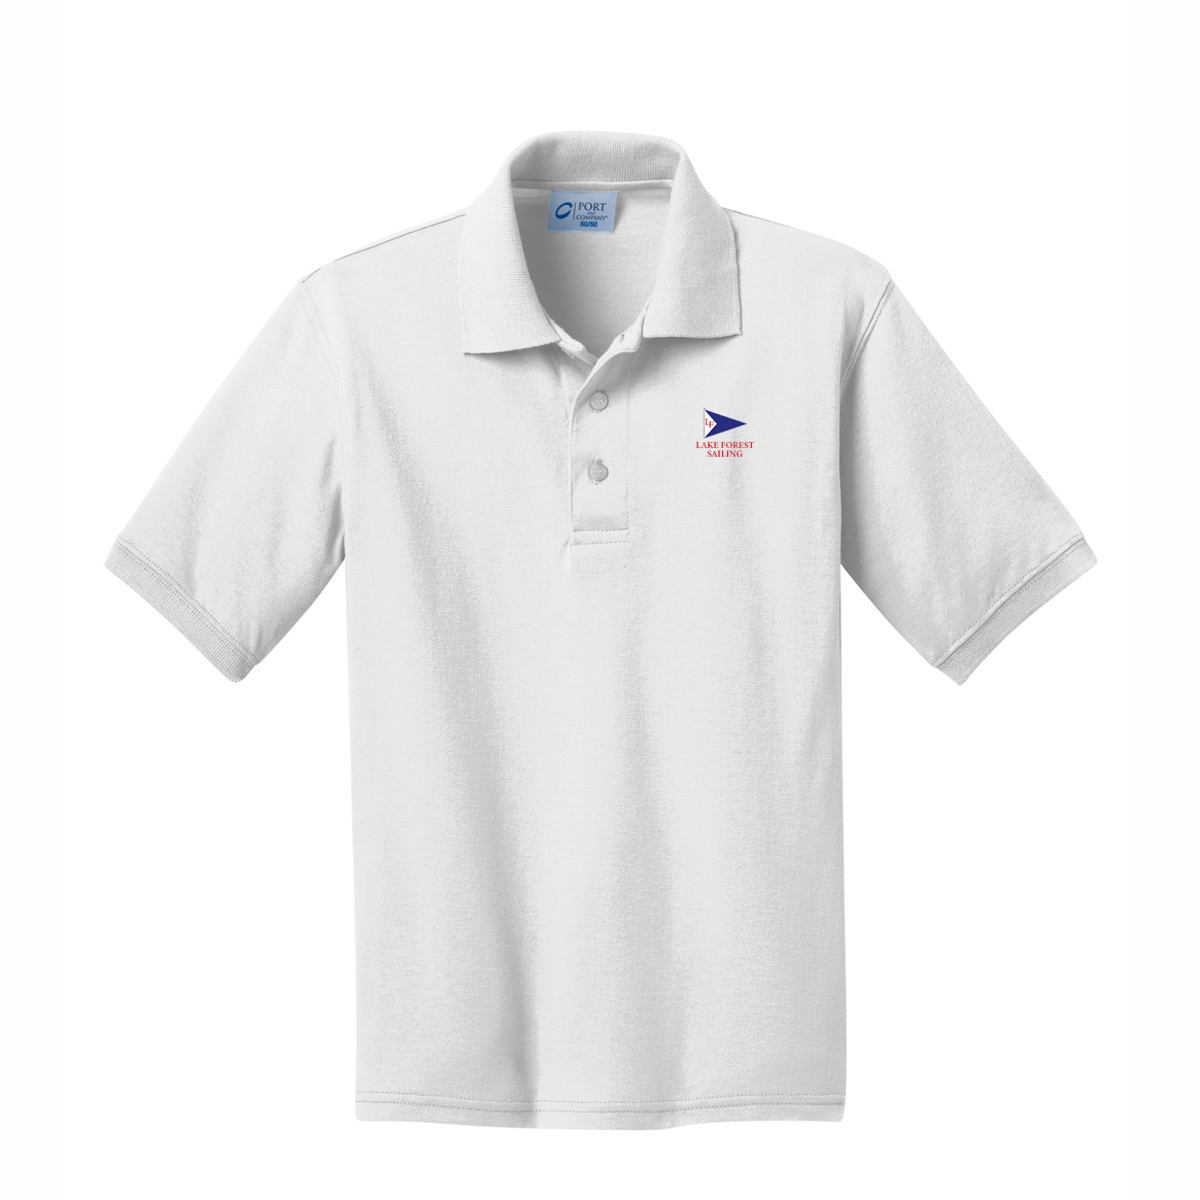 LAKE FOREST SAILING K'S COTTON POLO